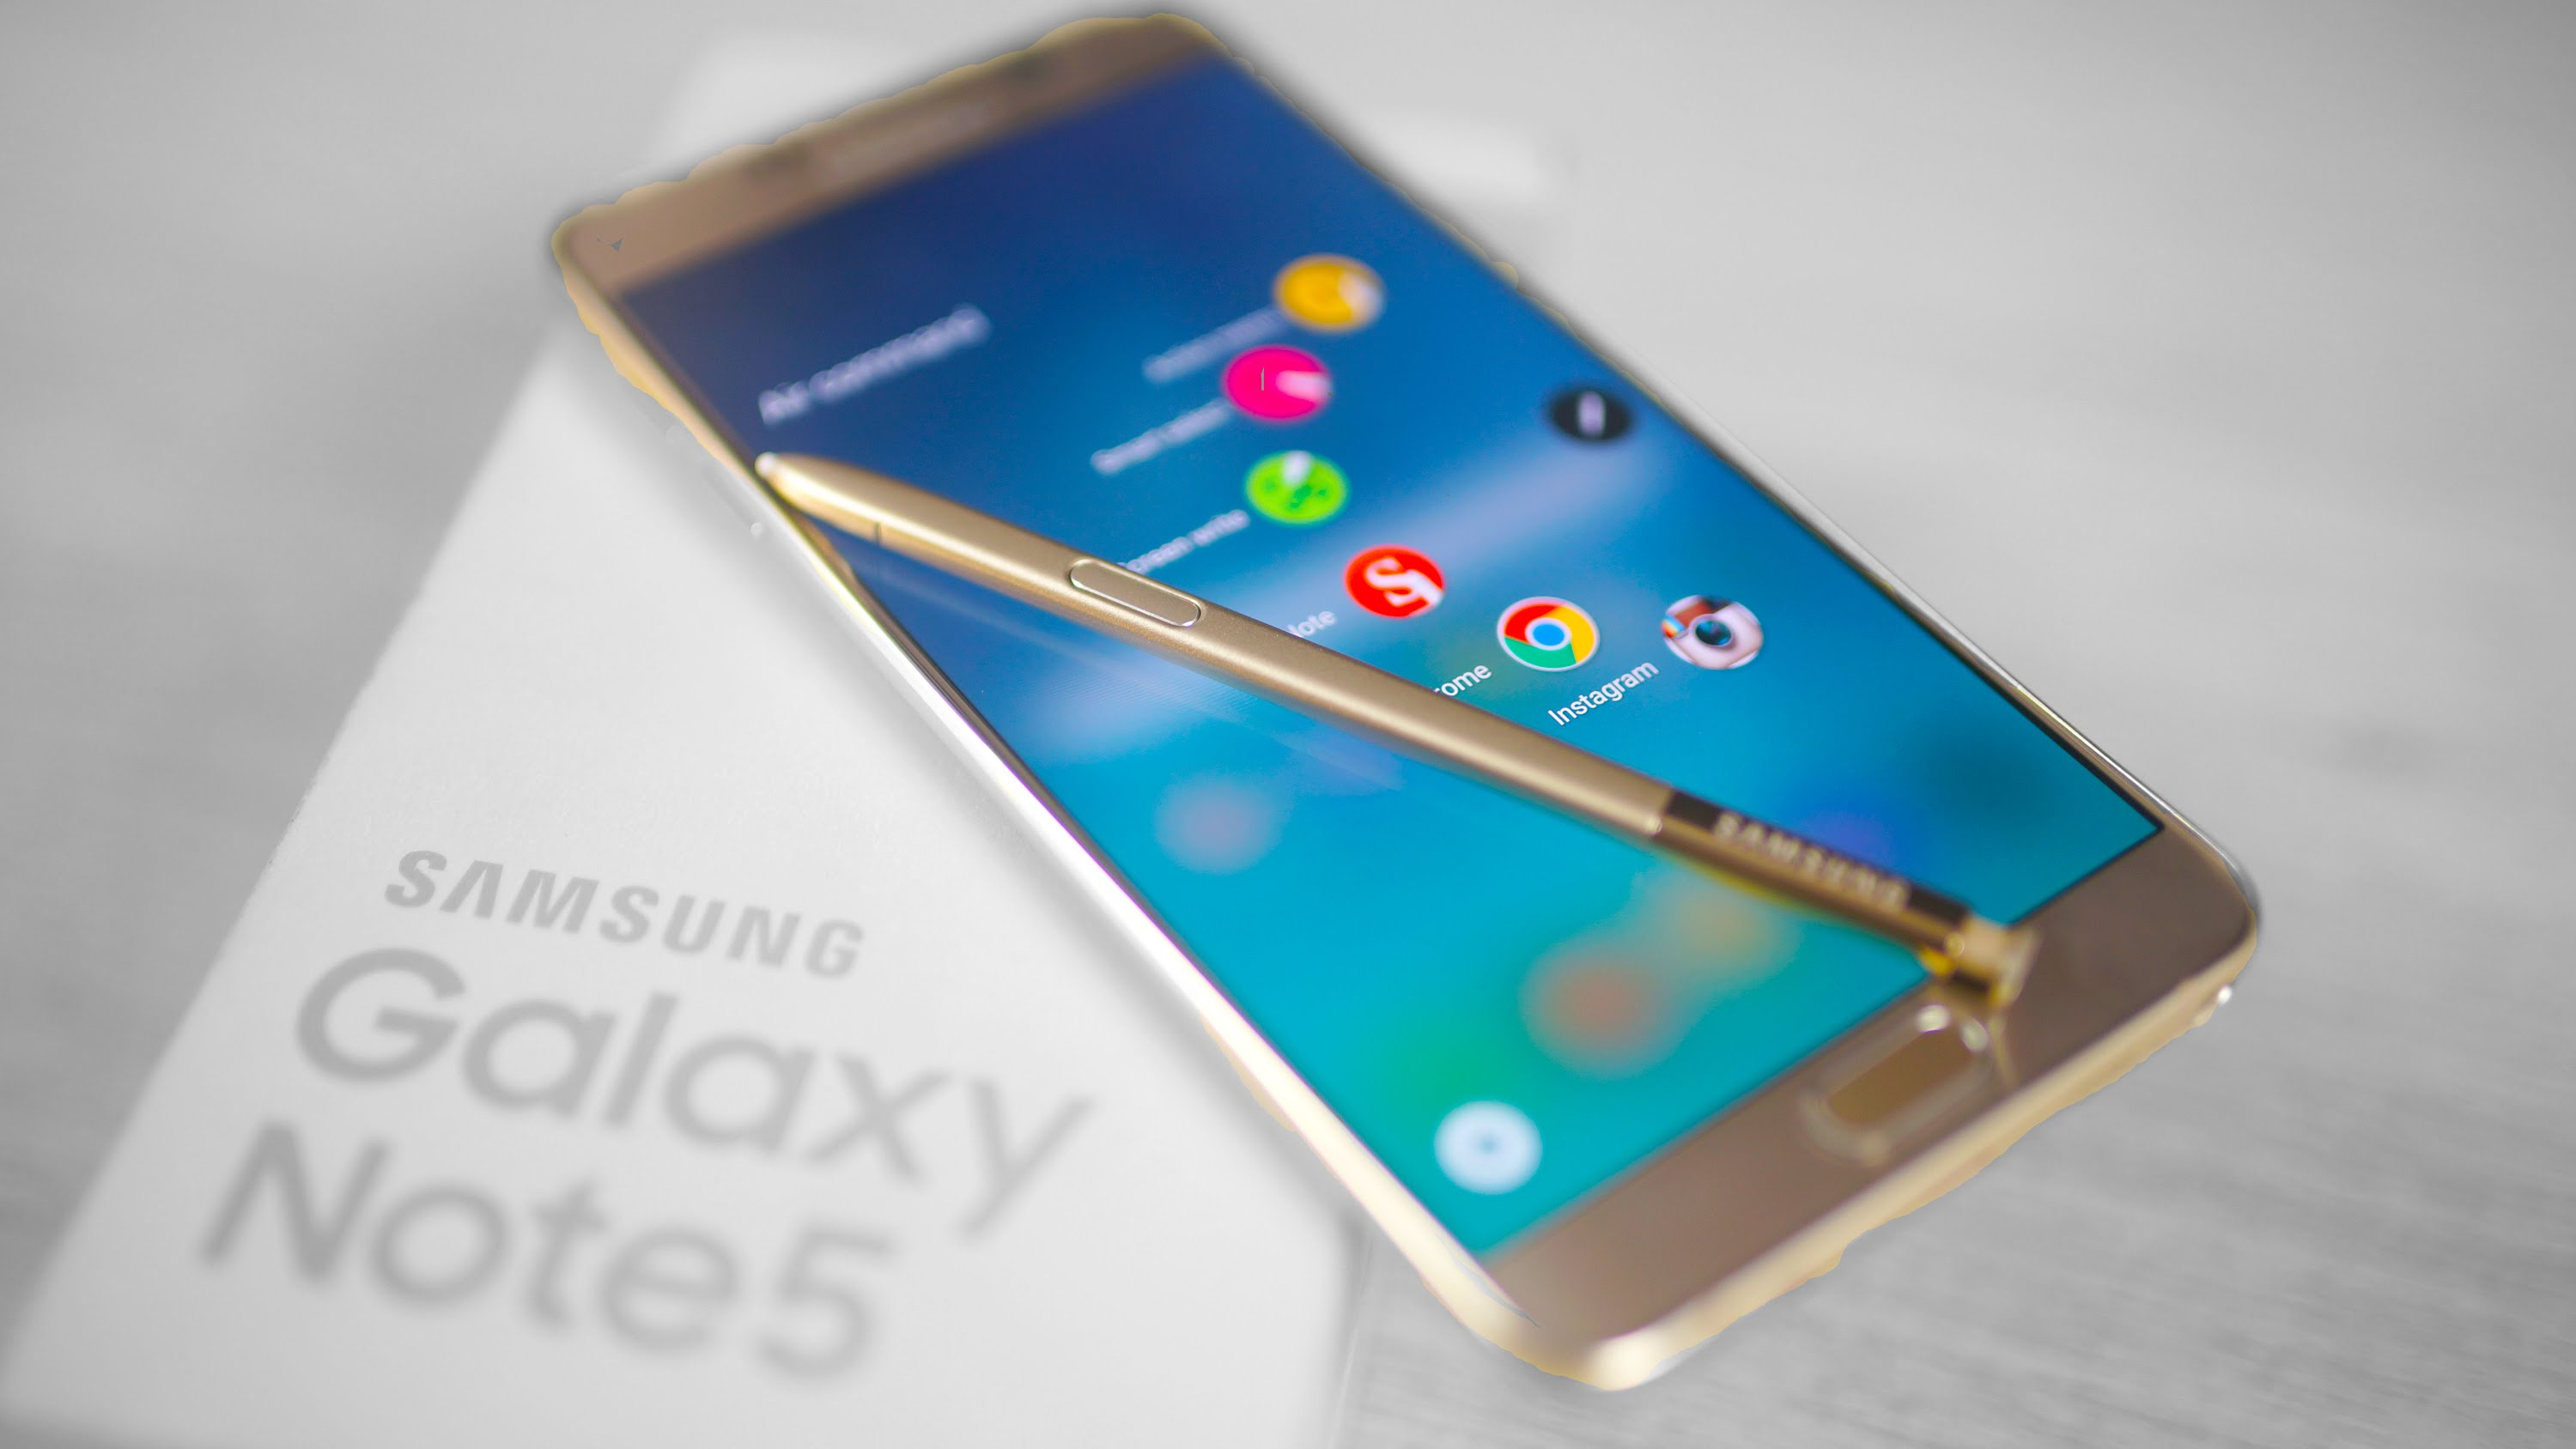 Samsung Galaxy Note 5 table